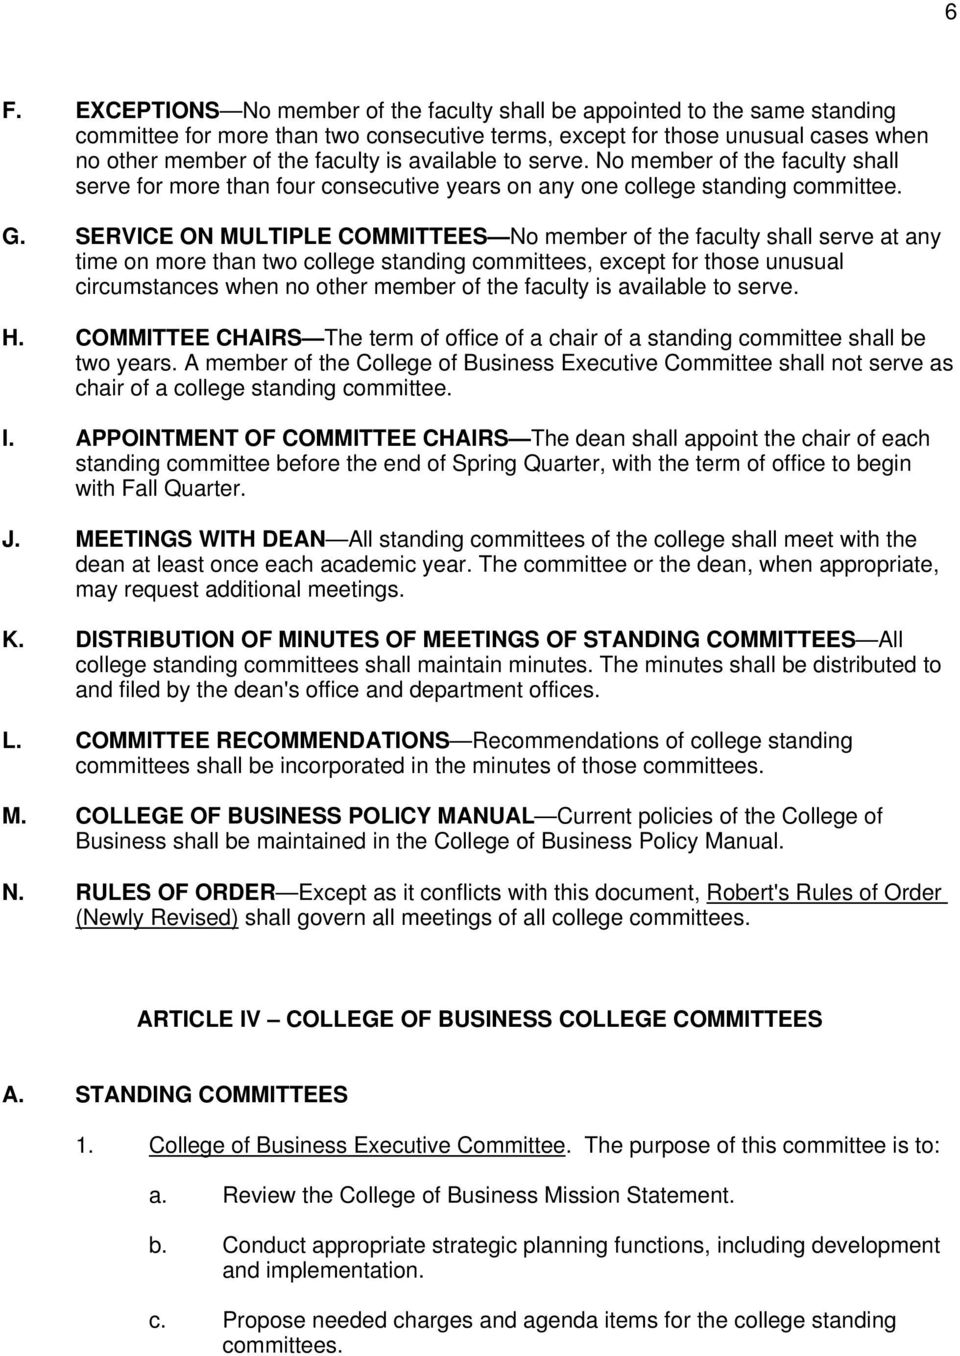 SERVICE ON MULTIPLE COMMITTEES No member of the faculty shall serve at any time on more than two college standing committees, except for those unusual circumstances when no other member of the